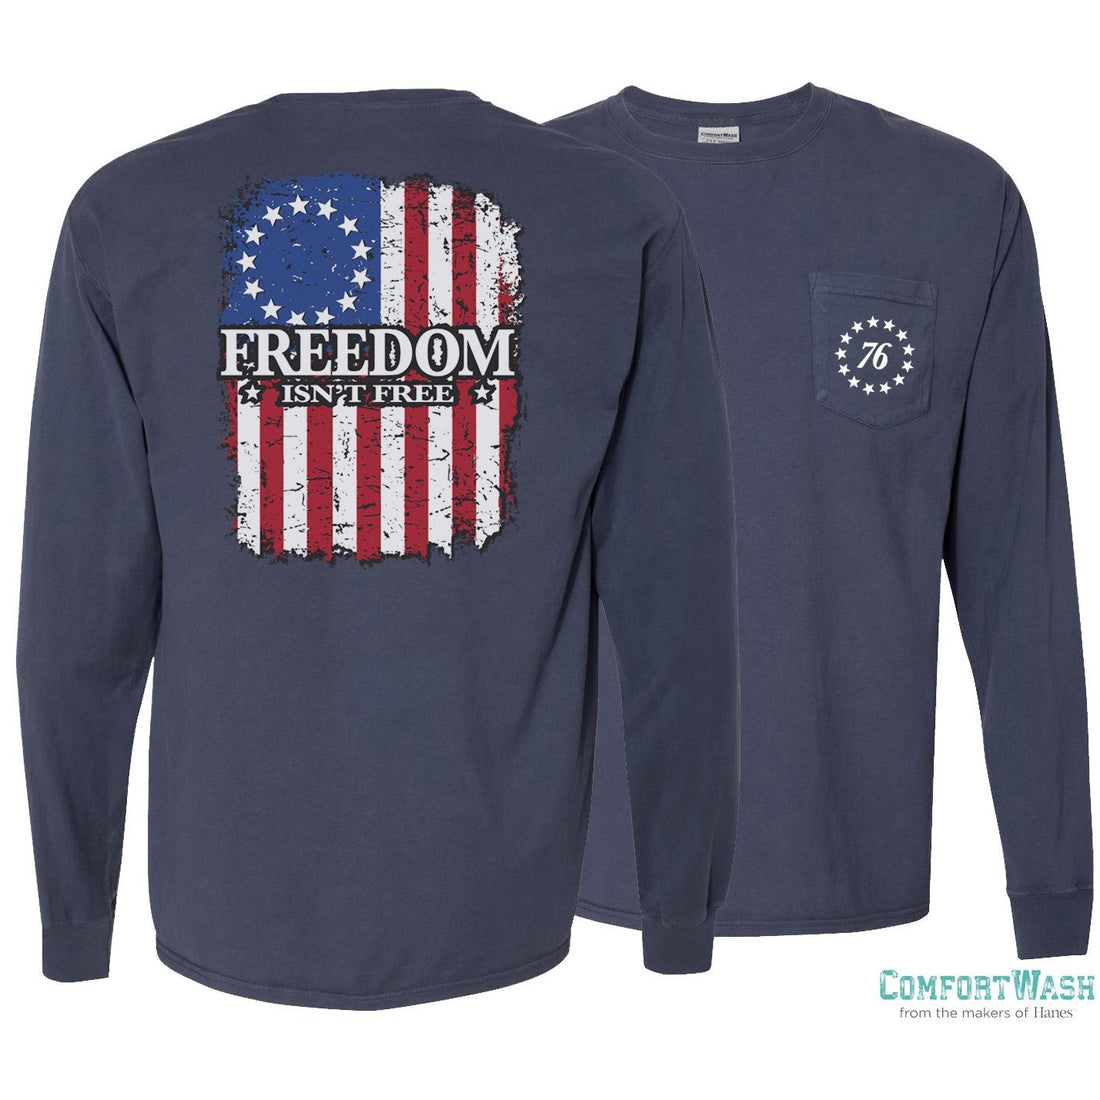 "Front and back of the USMC long sleeve shirt in navy with the words ""Freedom Isn't Free"" written across a confederate flag on the back."